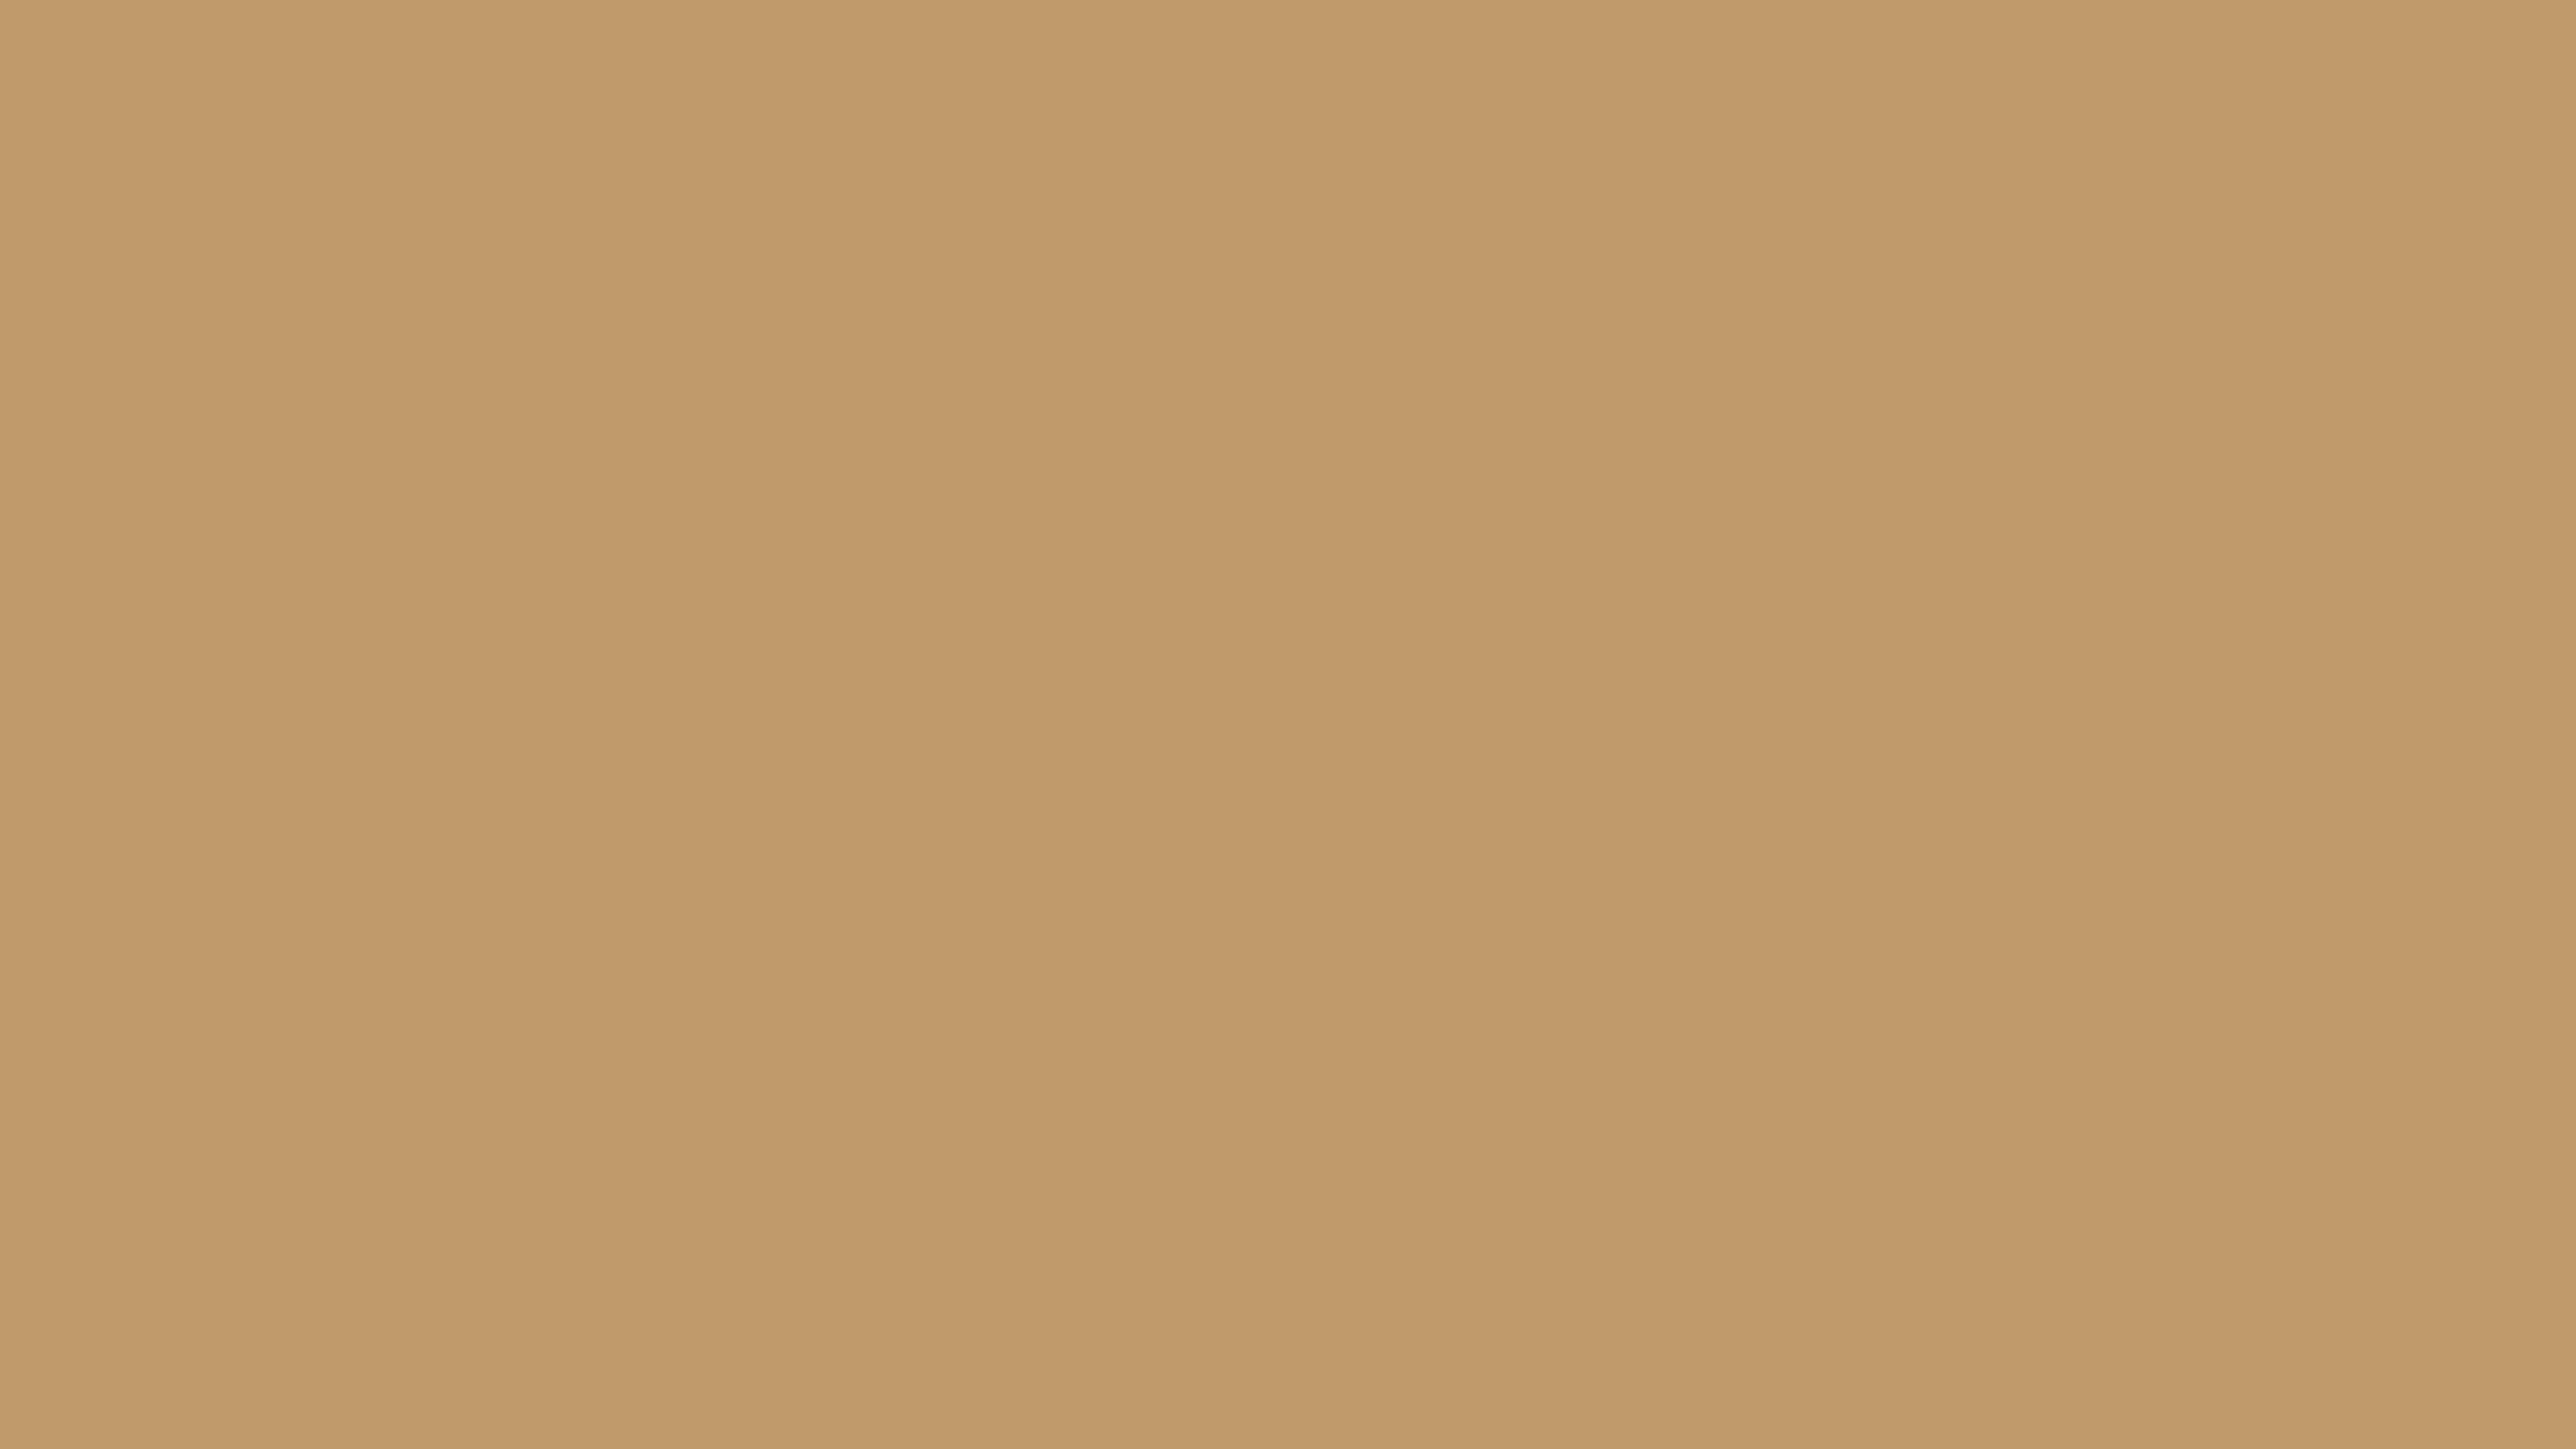 7680x4320 Wood Brown Solid Color Background